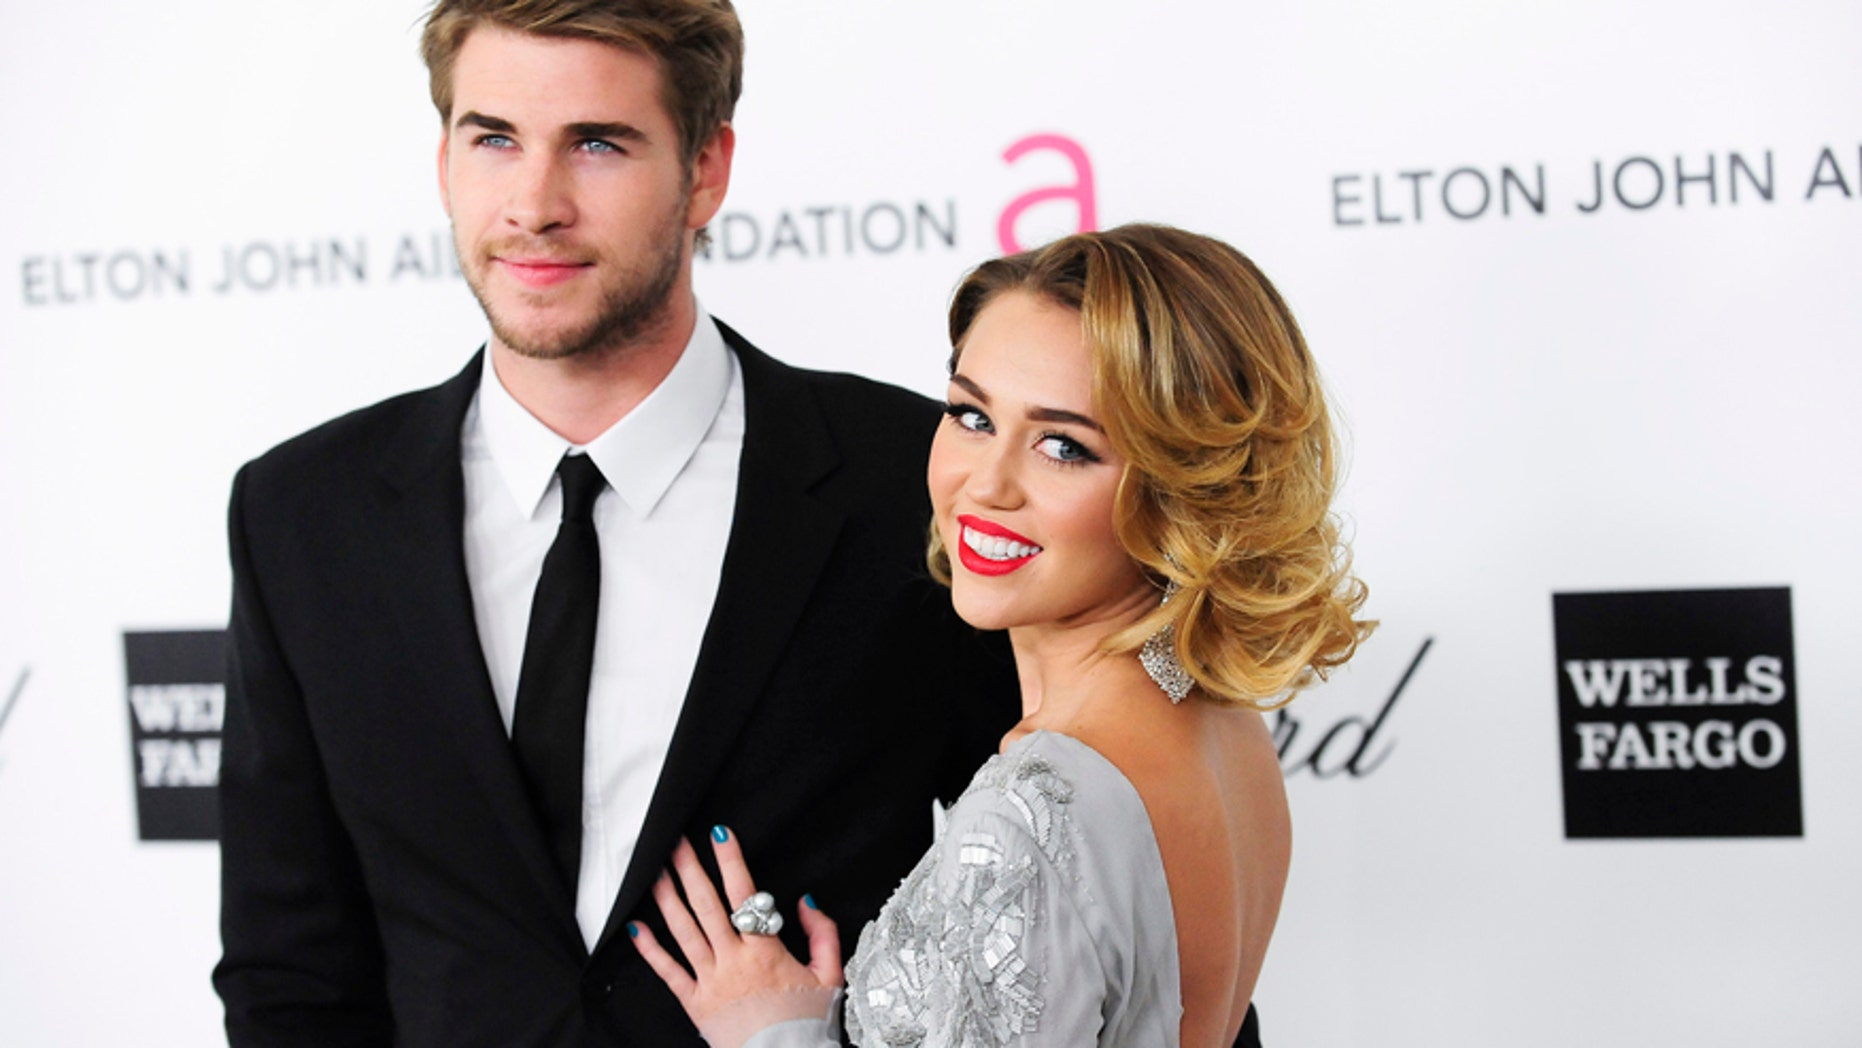 Miley Cyrus revealed in a new interview with Howard Stern on Wednesday that she doesn't call Liam Hemsworth fiancé.